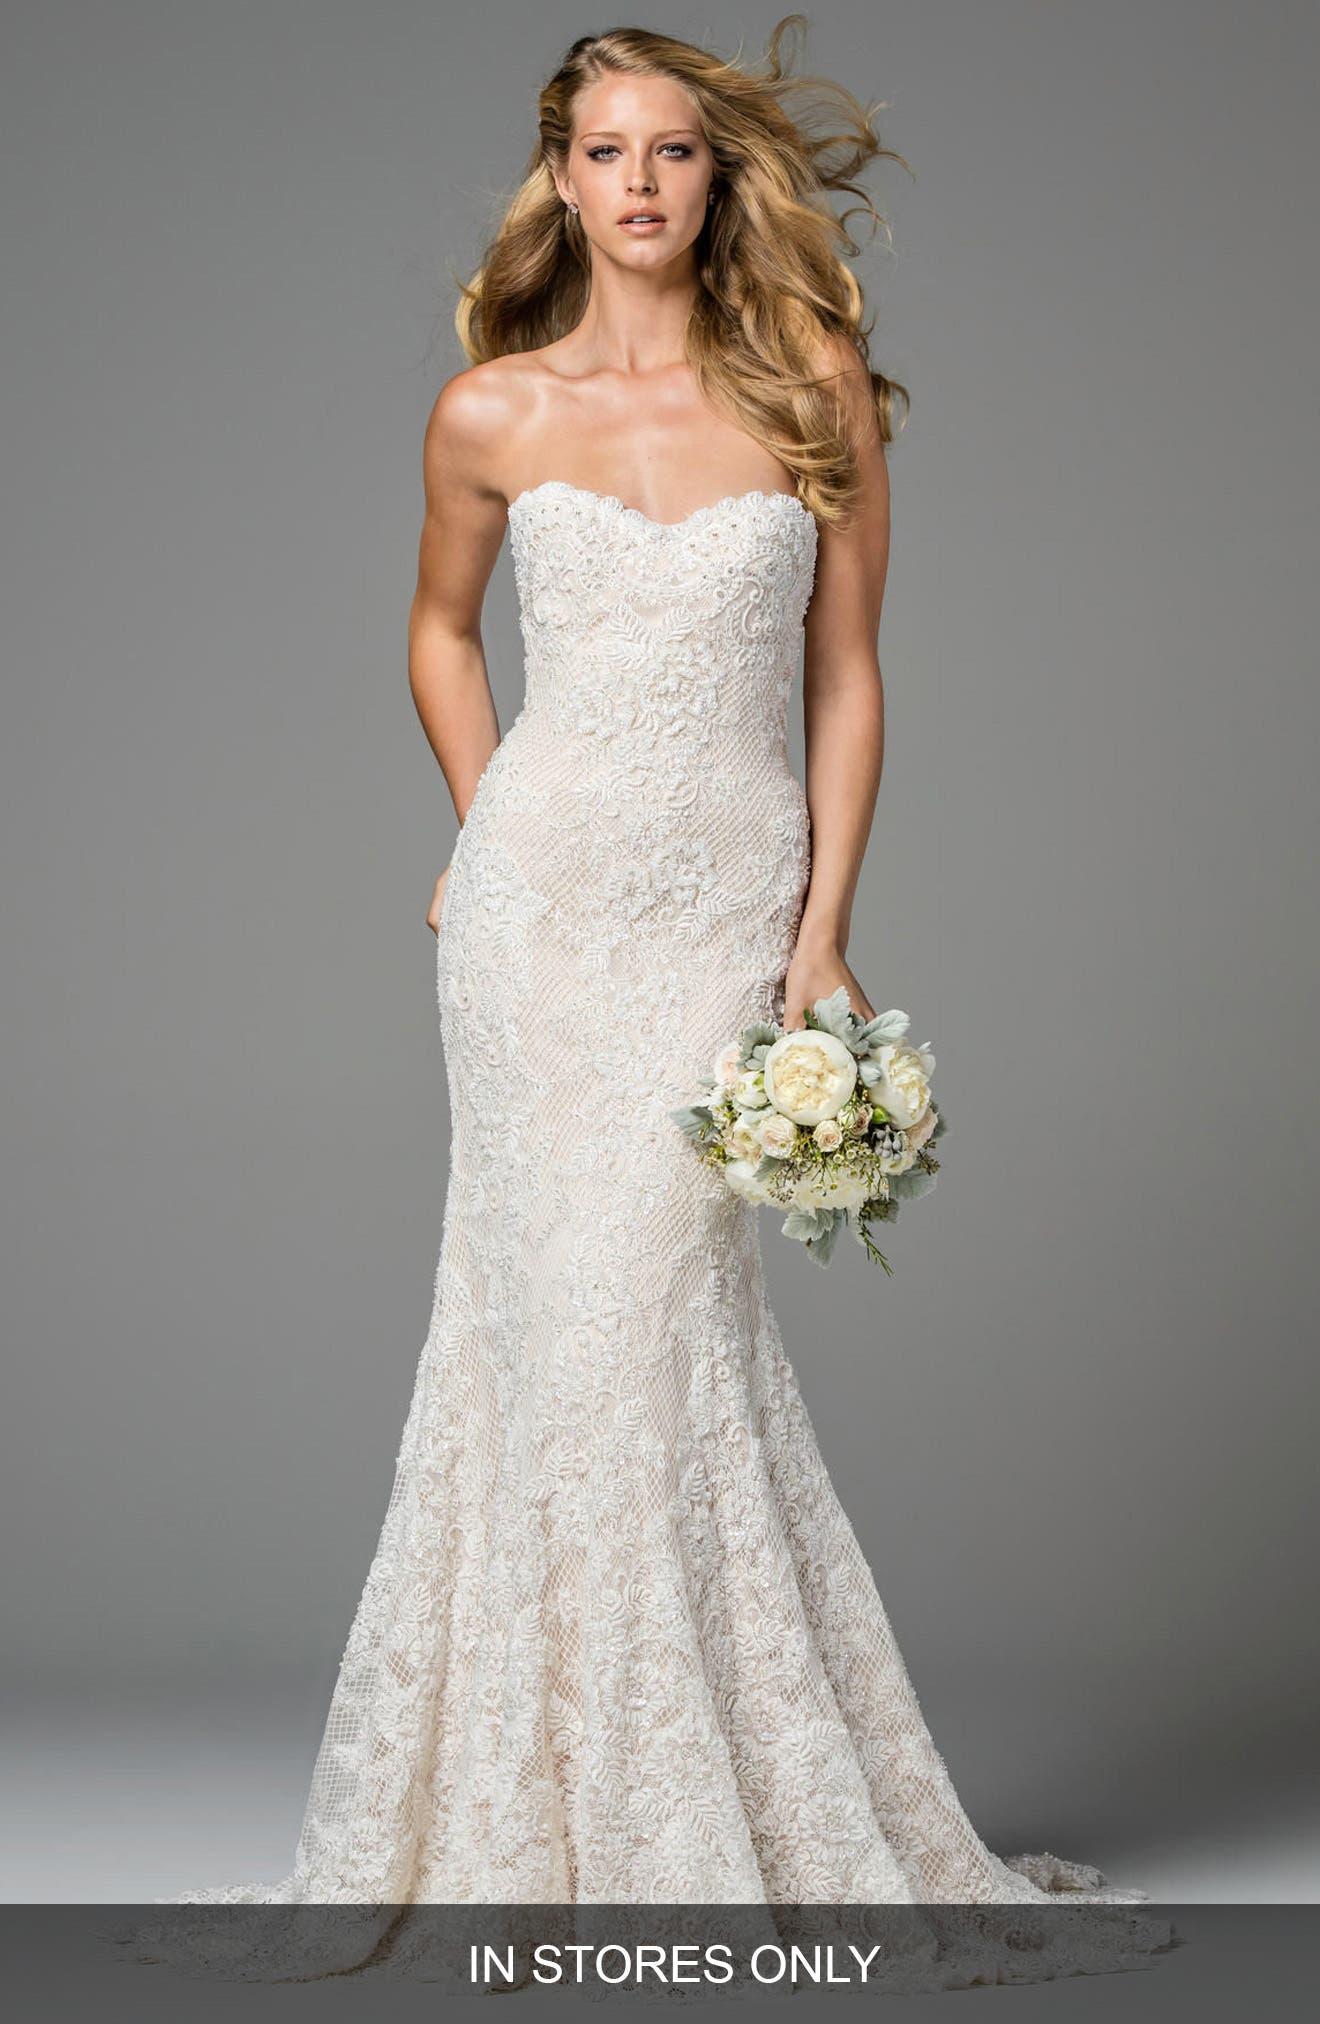 Copeland Strapless Lace Gown,                             Main thumbnail 1, color,                             IVORY